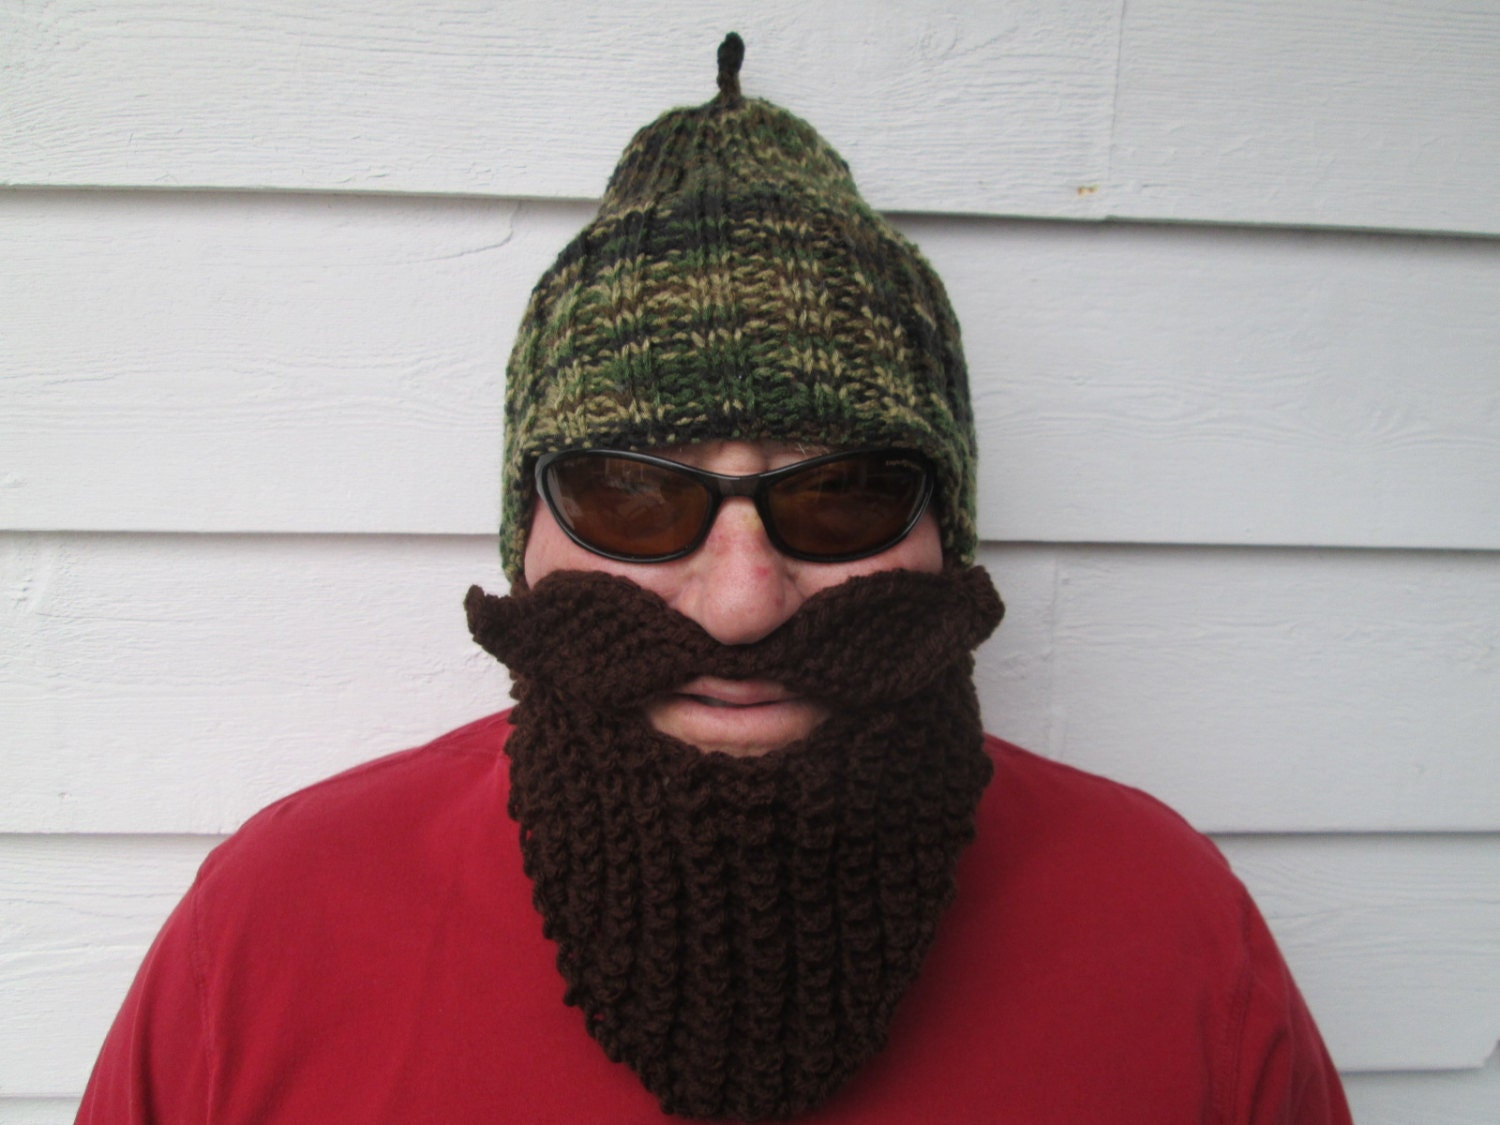 Bearded Beanie Knitting Pattern : Knitted long beard hat Camouflage hat Beard Beanie by Ritaknitsall